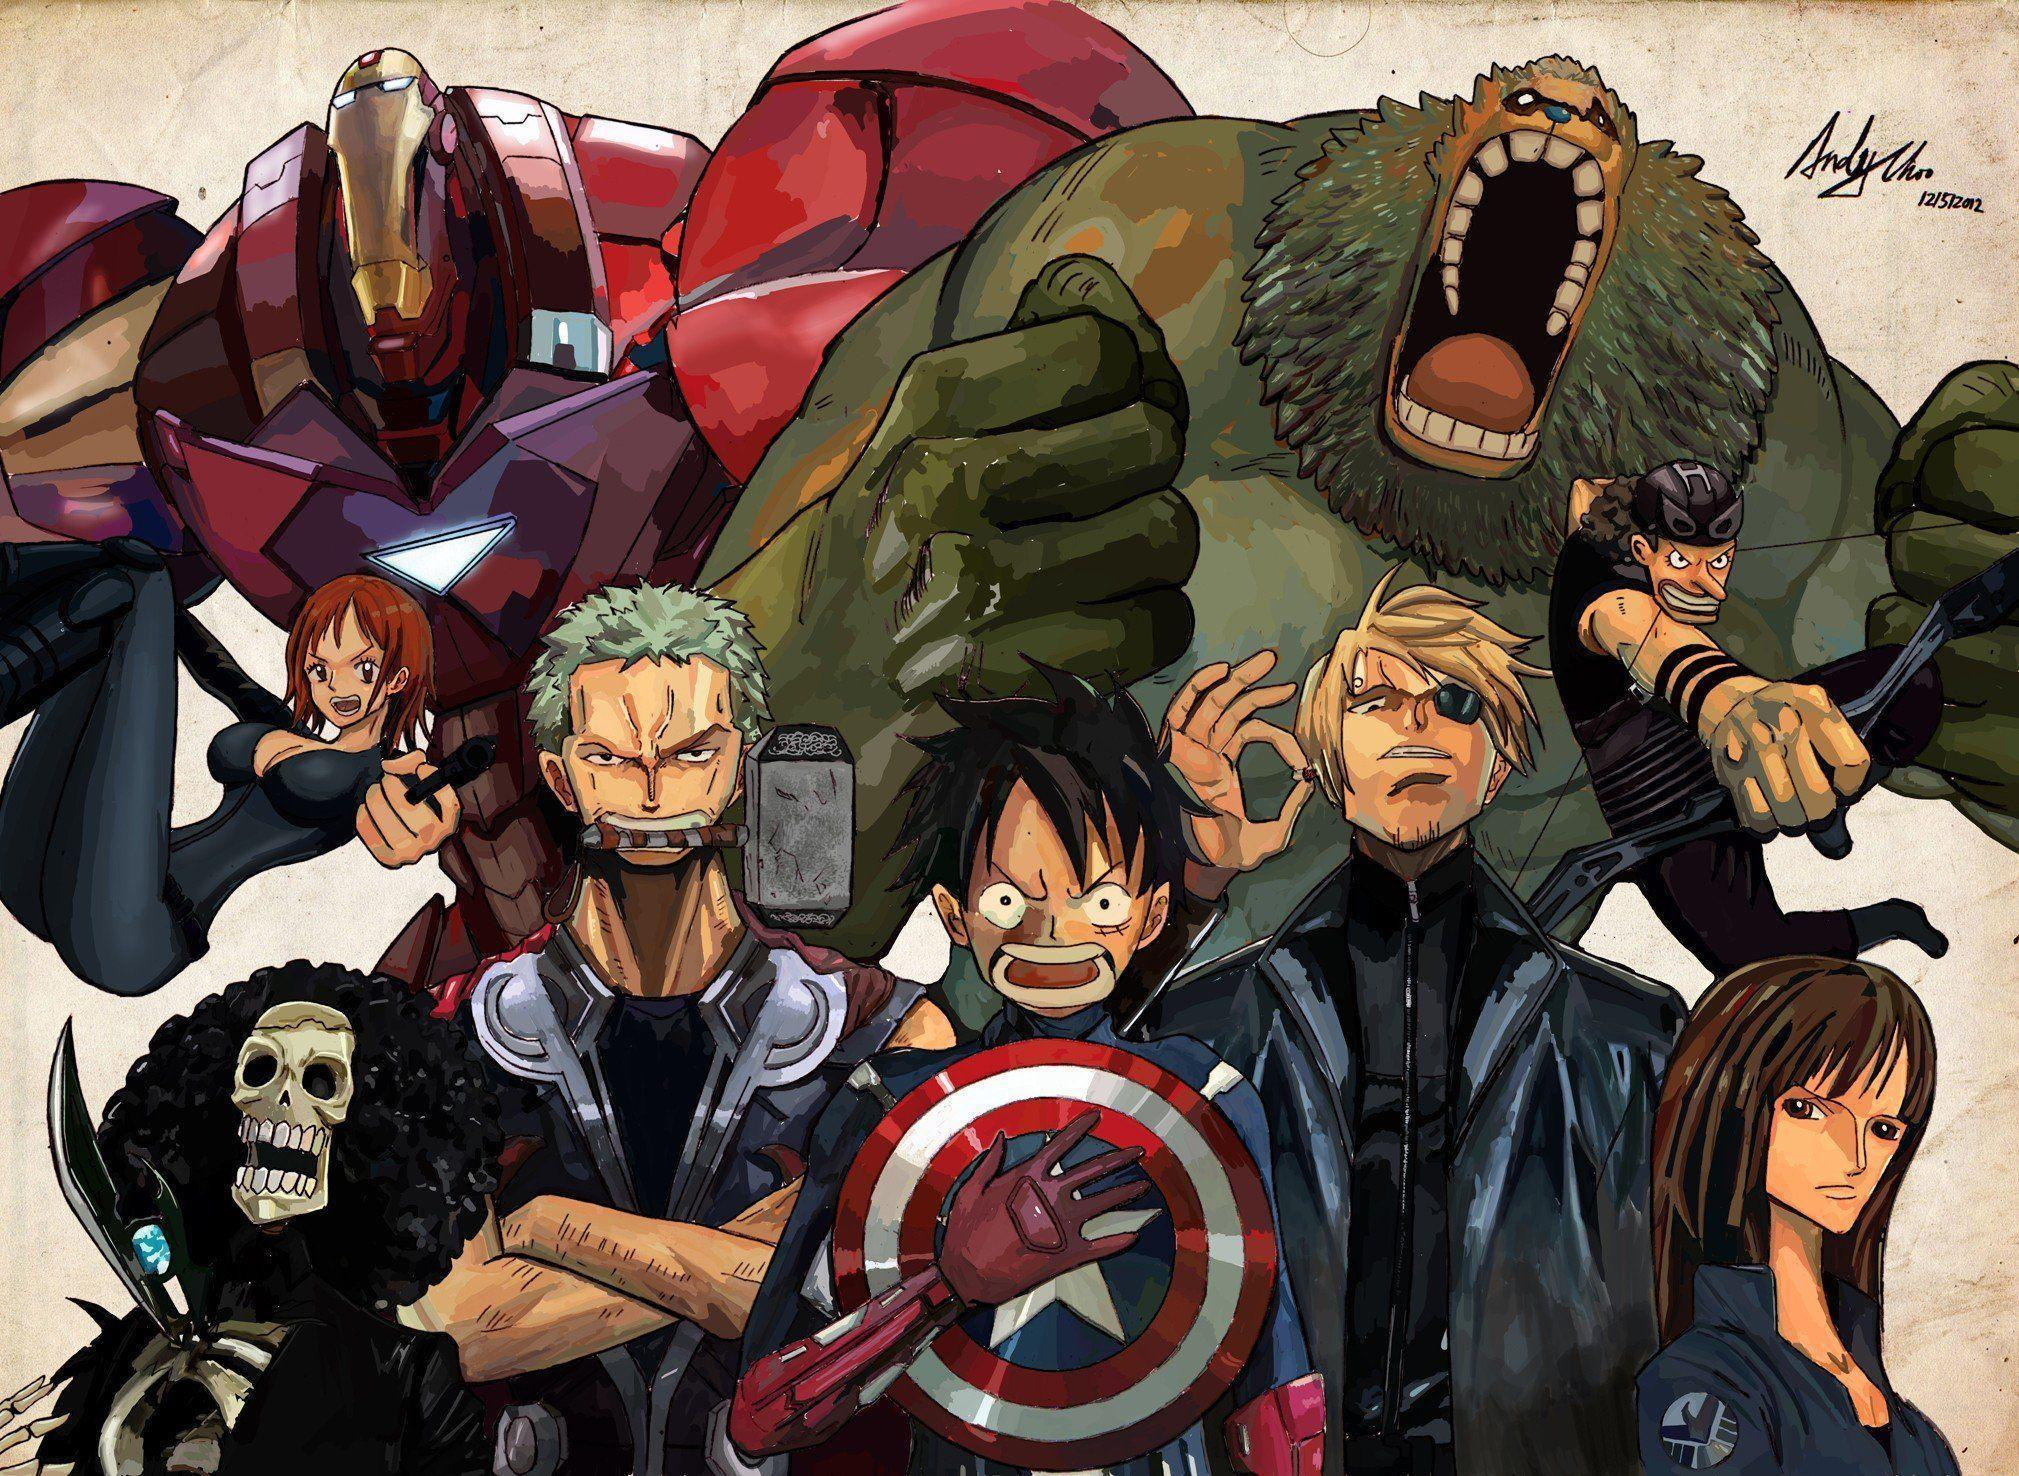 Anime Avengers Brook One Piece Franky Monkey D Luffy Nami Nico